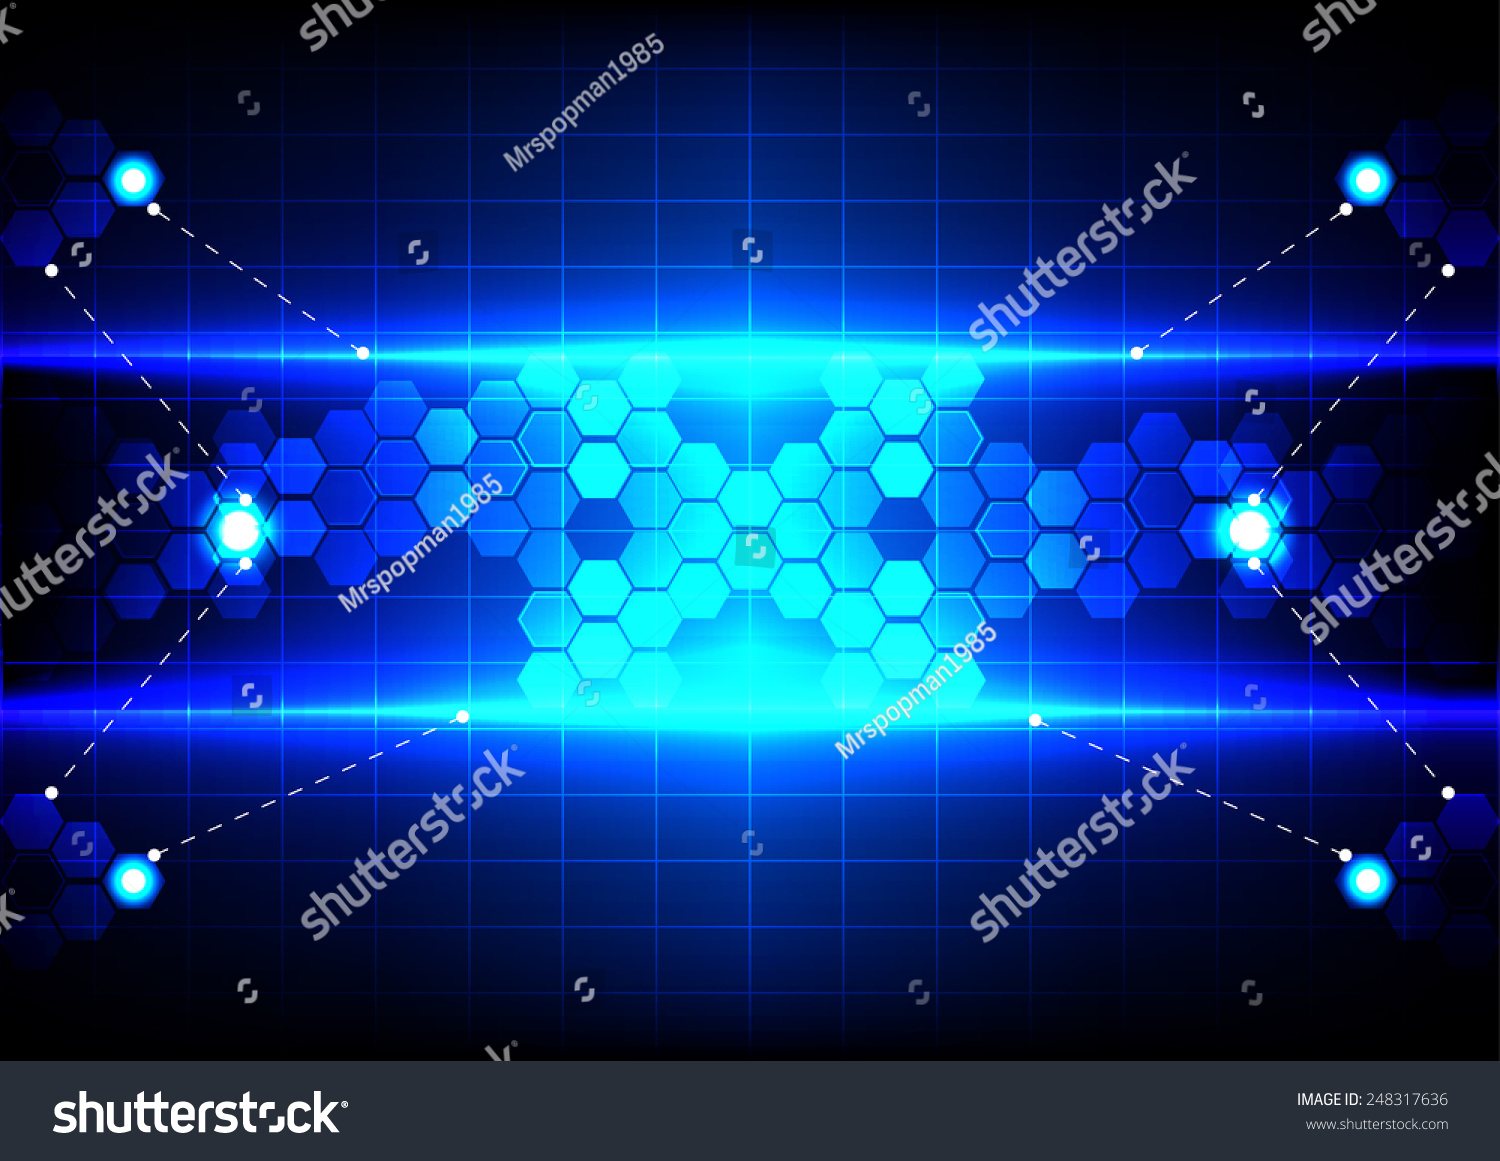 Abstract Technology Background With Light Effect: Abstract Hexagon Light Blue Effect Technology Stock Vector